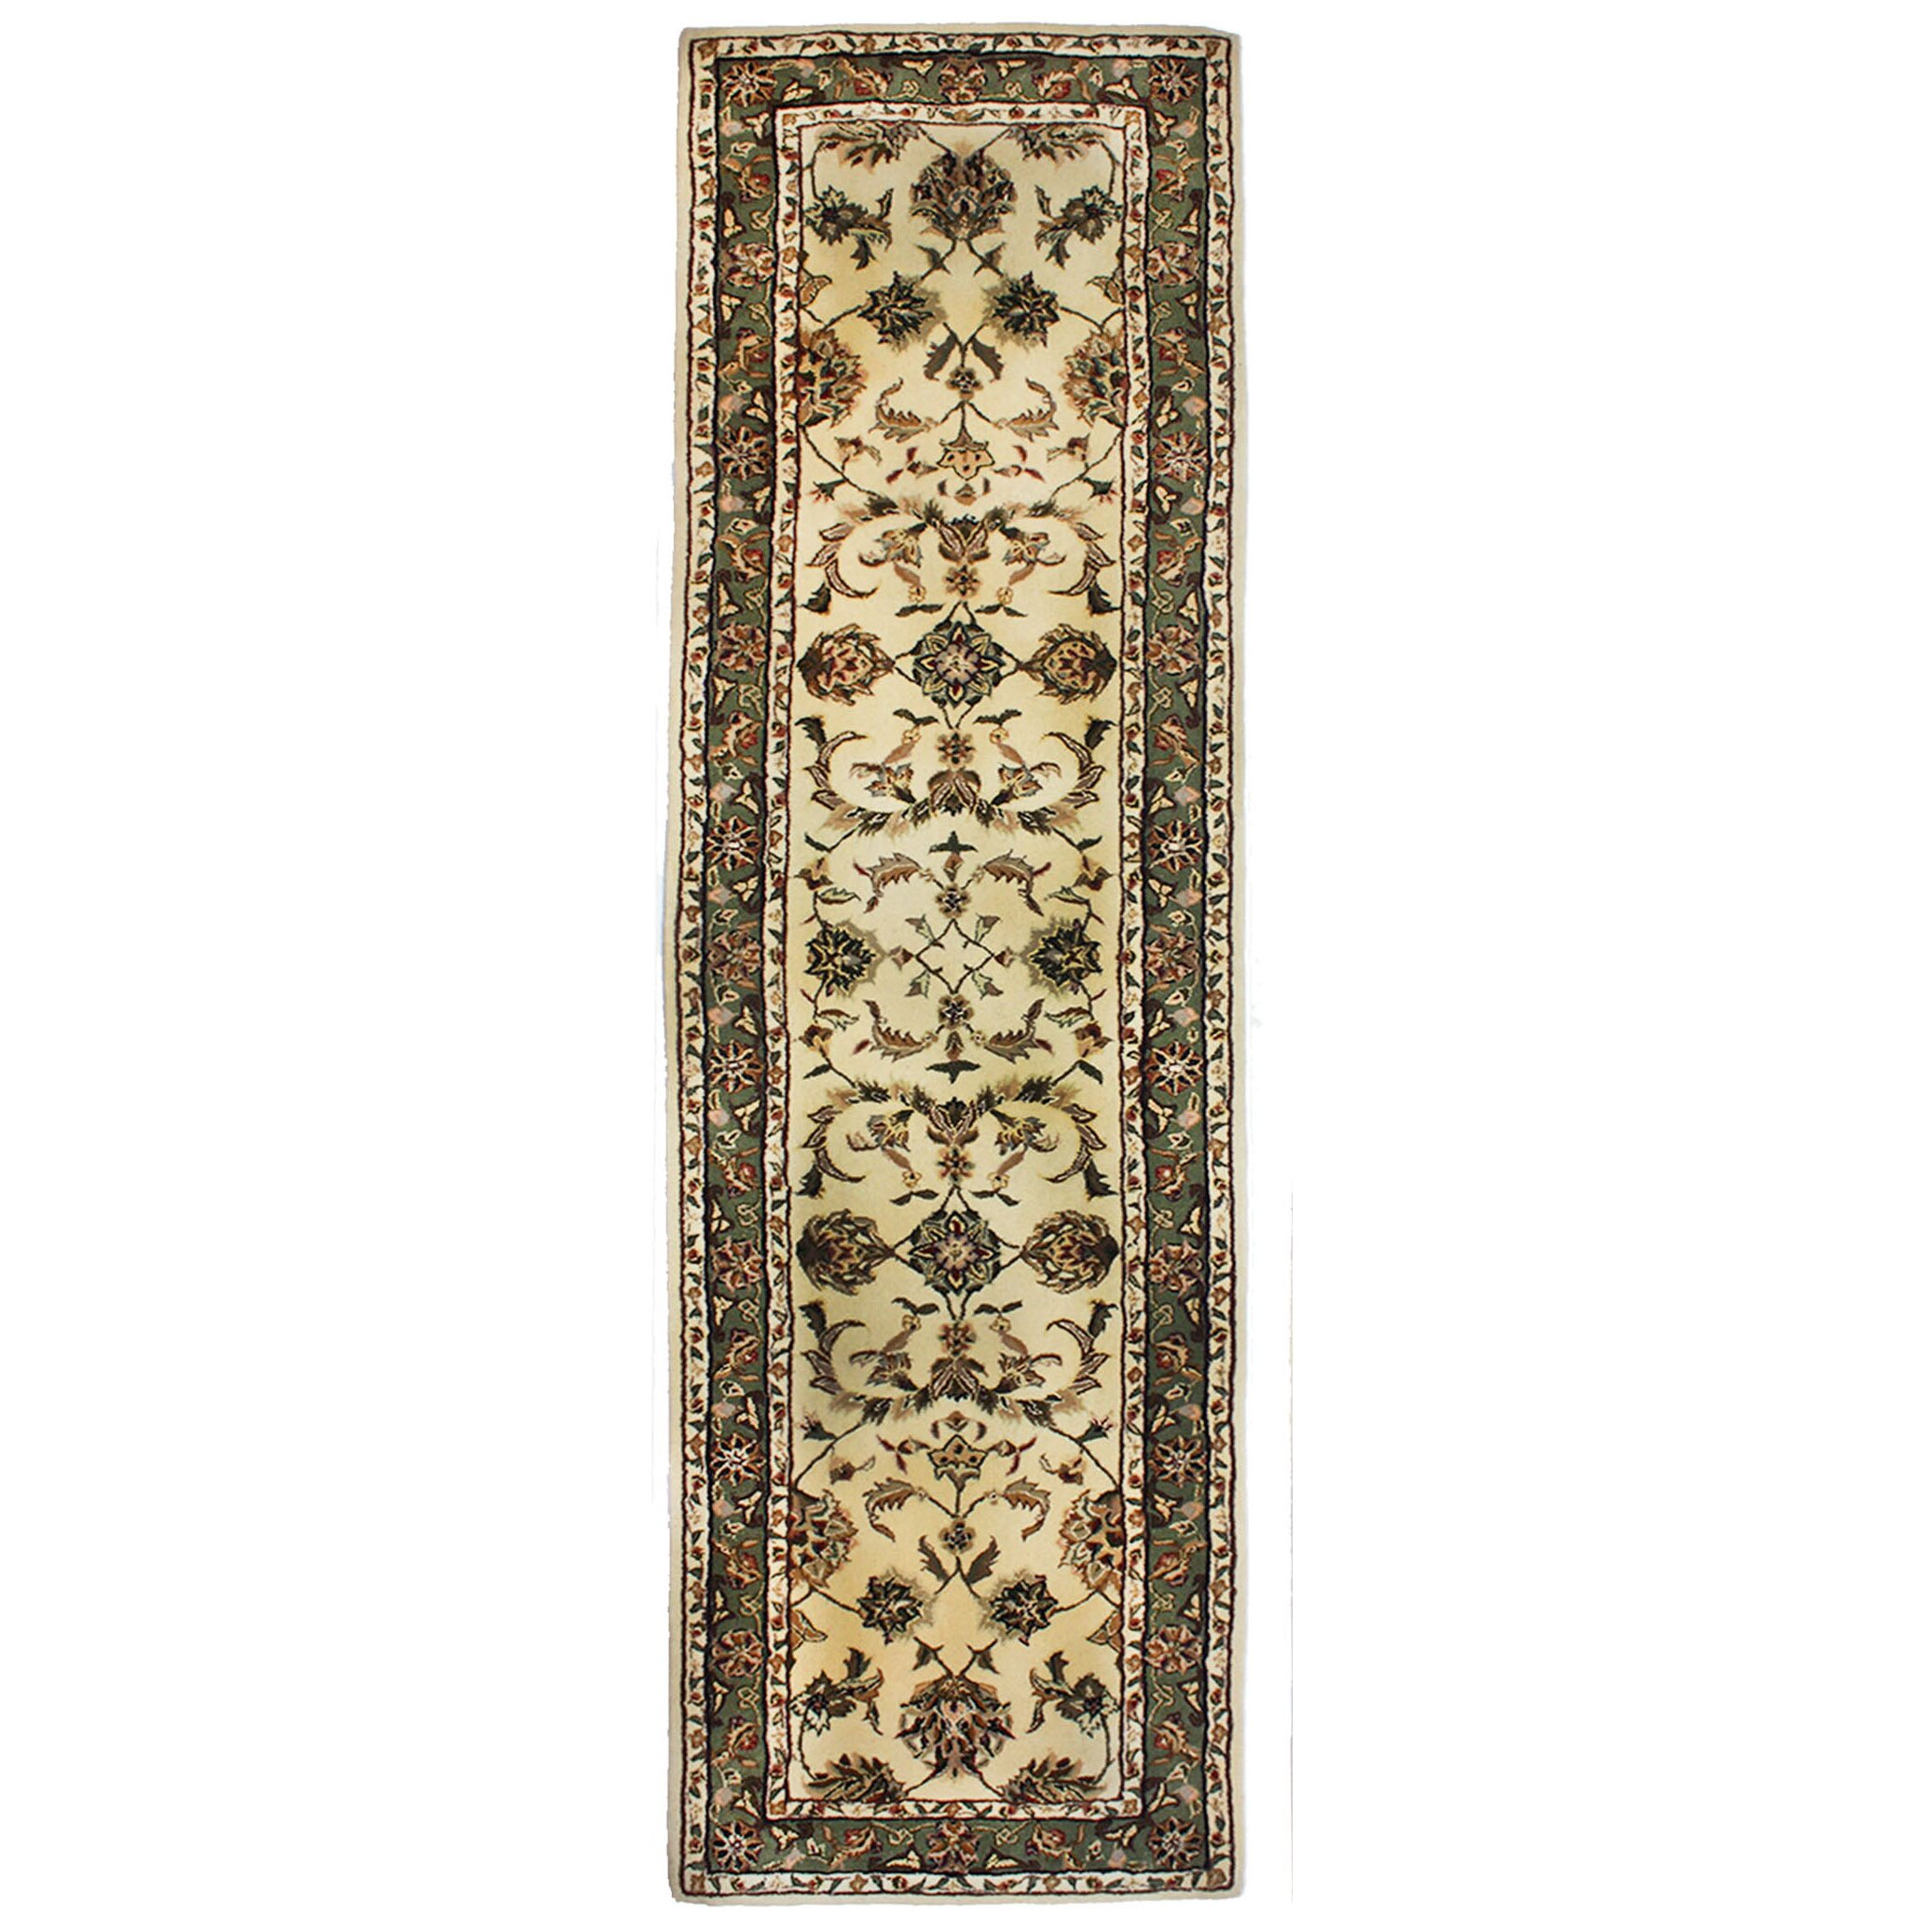 Drexel Heritage Opulance Hand-Tufted Natural/Olive Green Area Rug : Wayfair